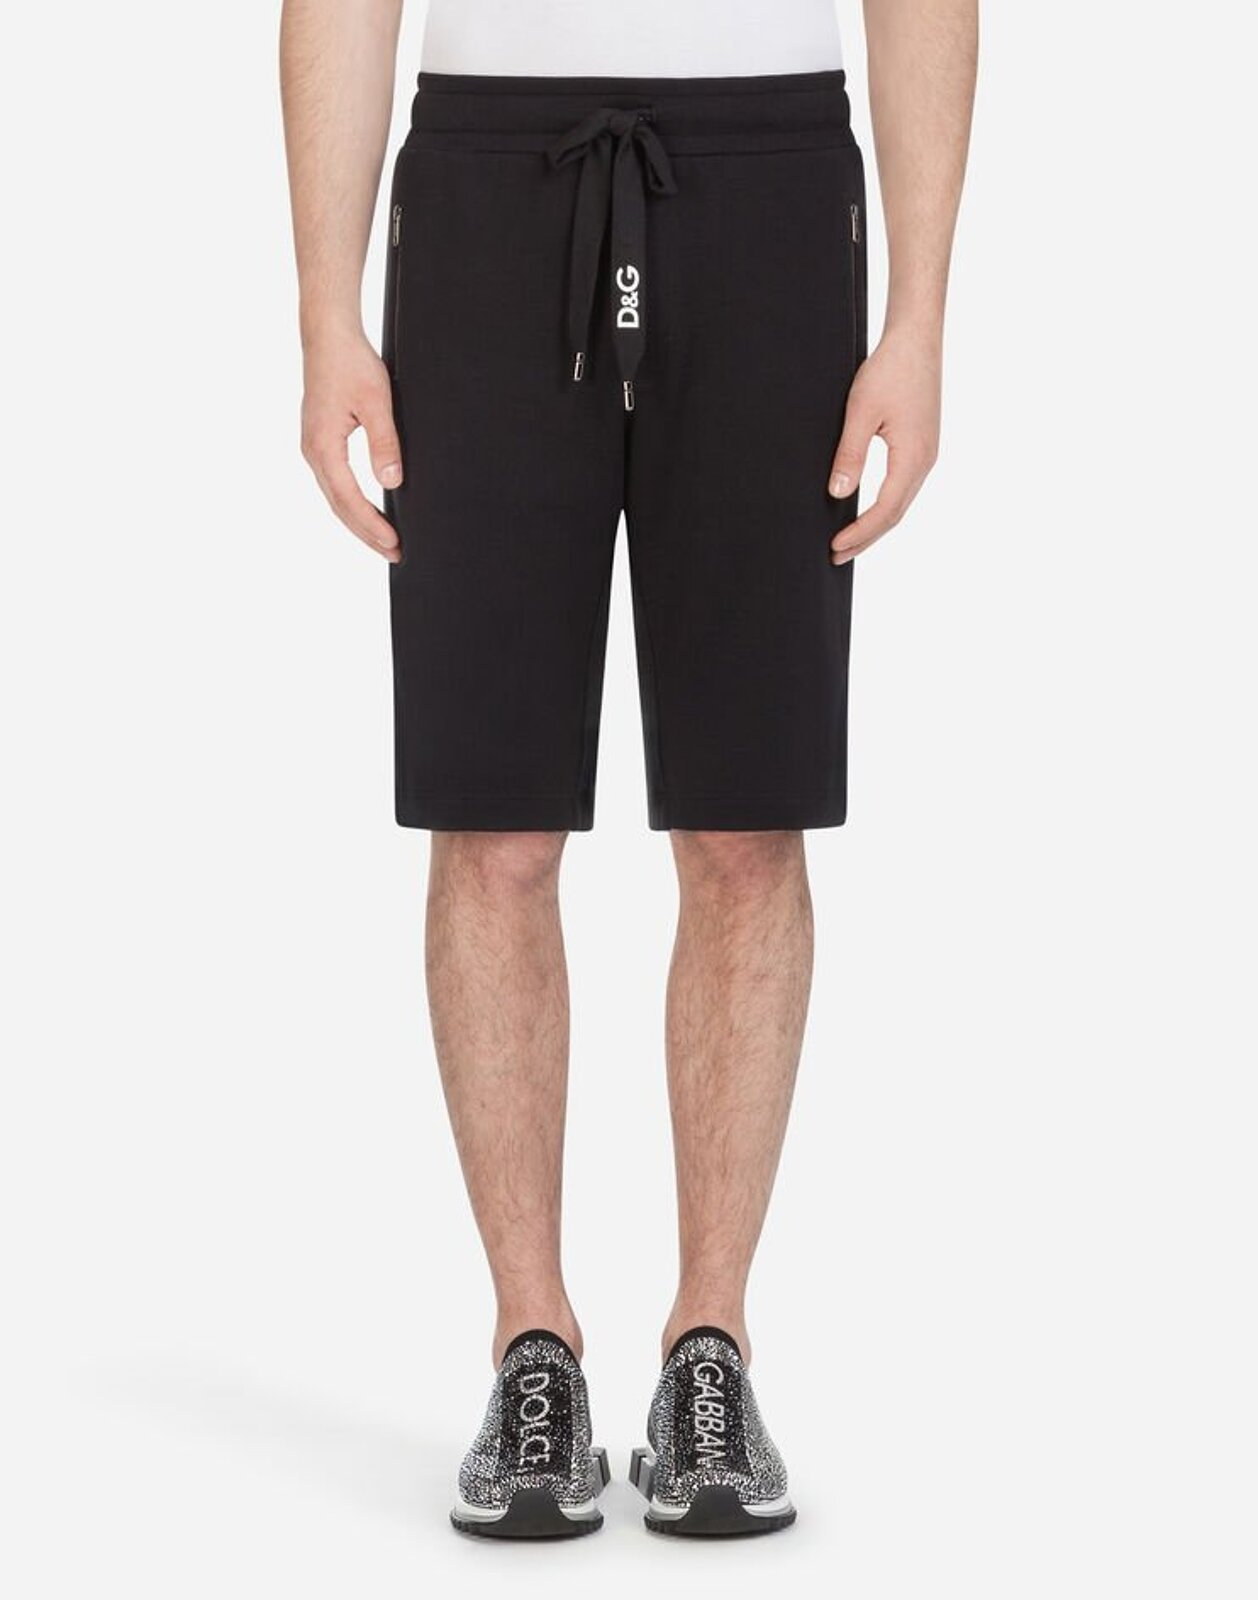 Cotton Jogging Bermuda Shorts With Embroidery - Dolce & Gabbana